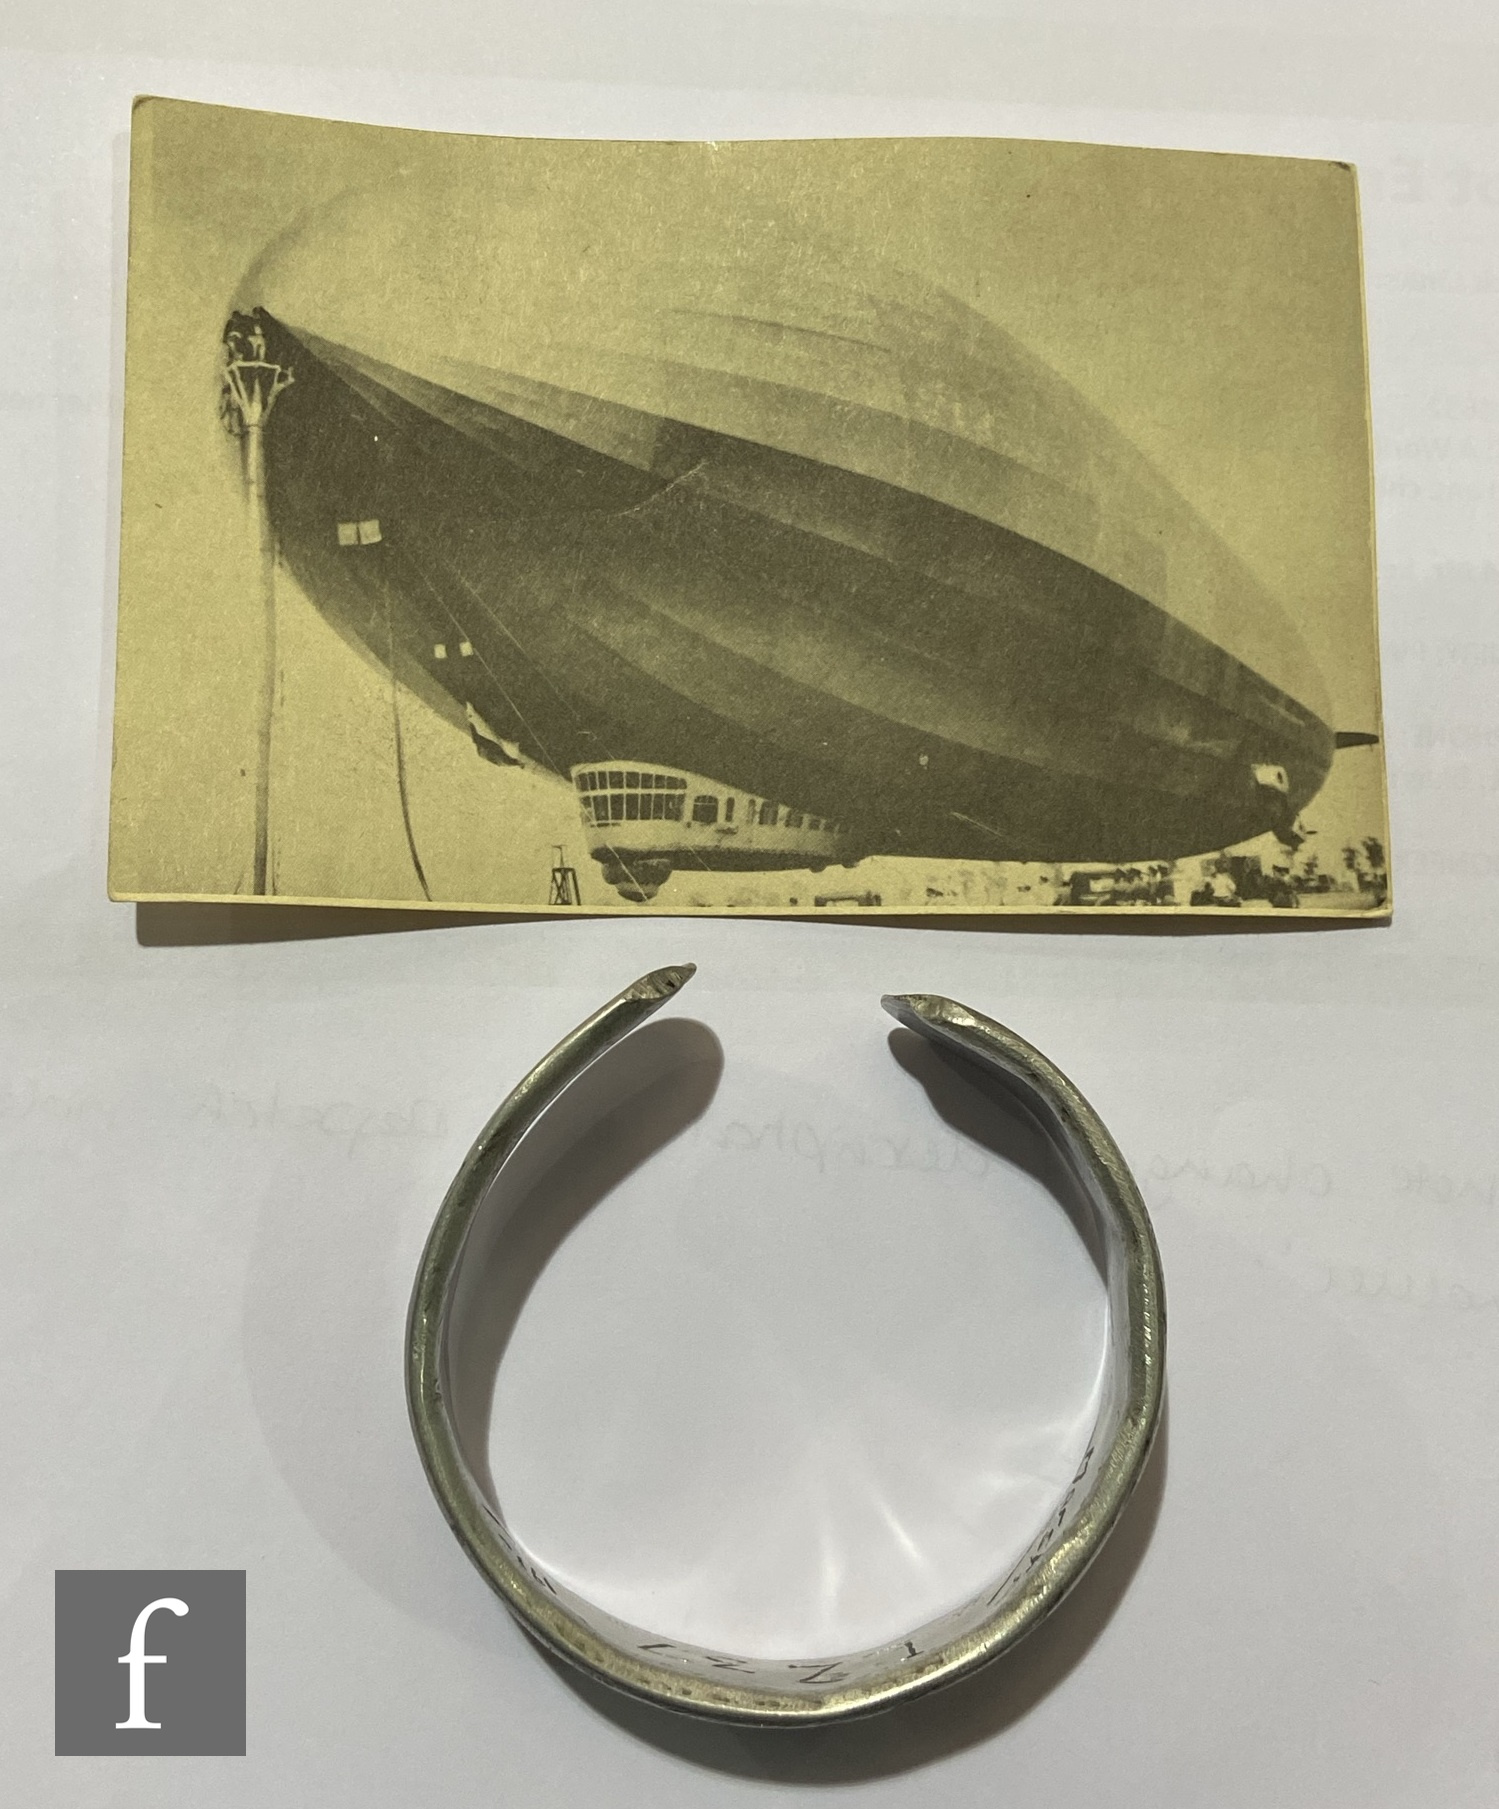 A collection of relics from the zeppelin airship LZ37 to include a piece of fabric mounted in an - Image 2 of 11